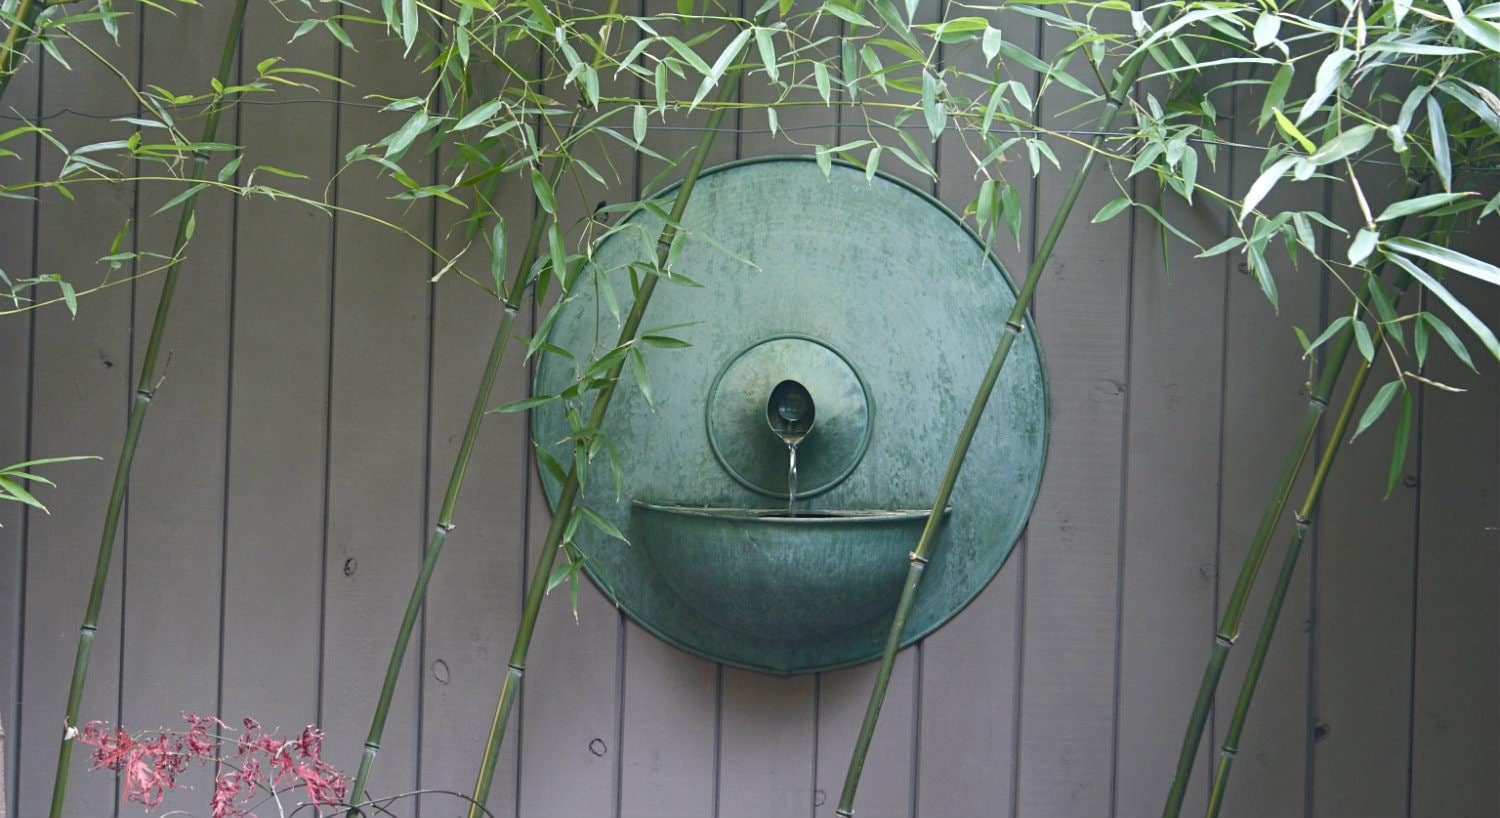 Outdoor antique wall fountain with green patina on wood wall